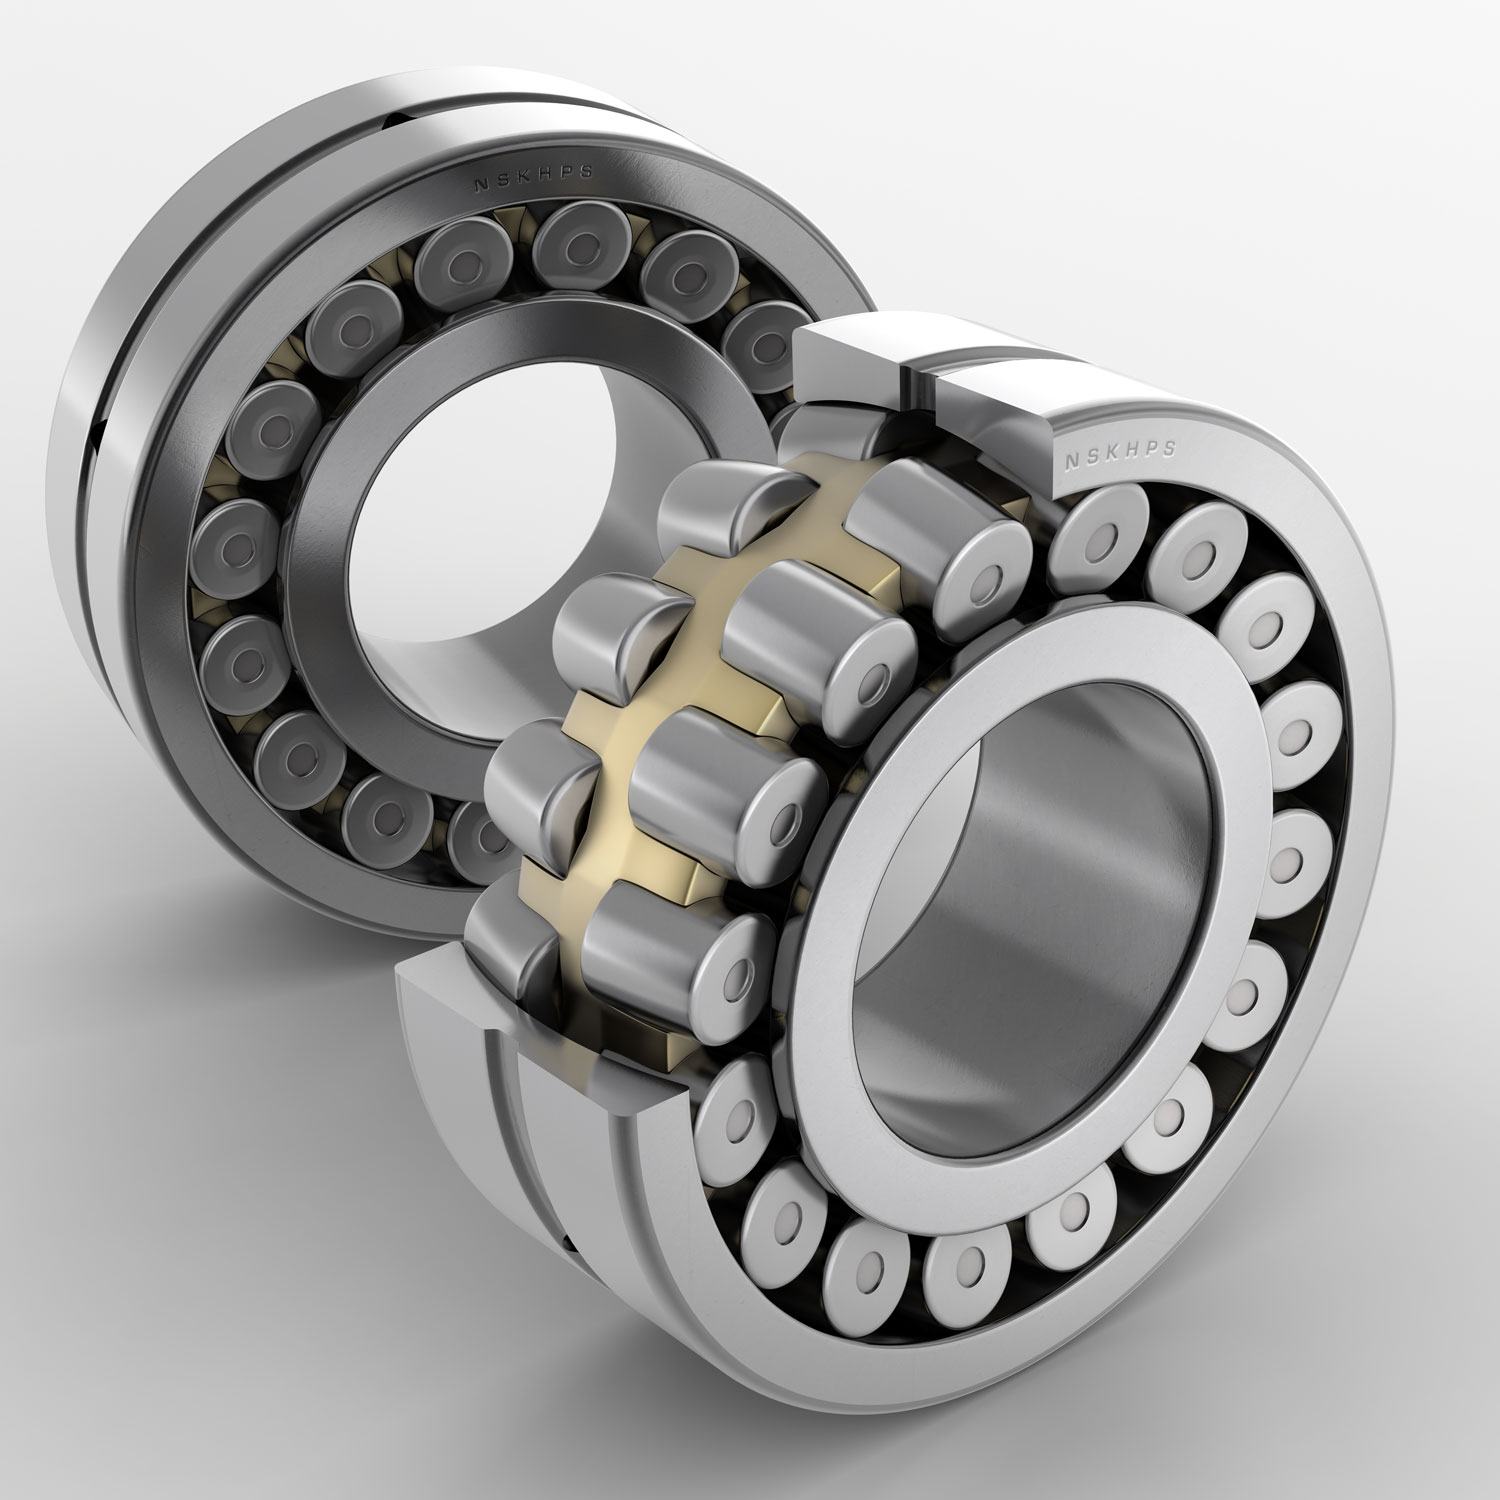 NSK Bearings with Sectioned Cutaway